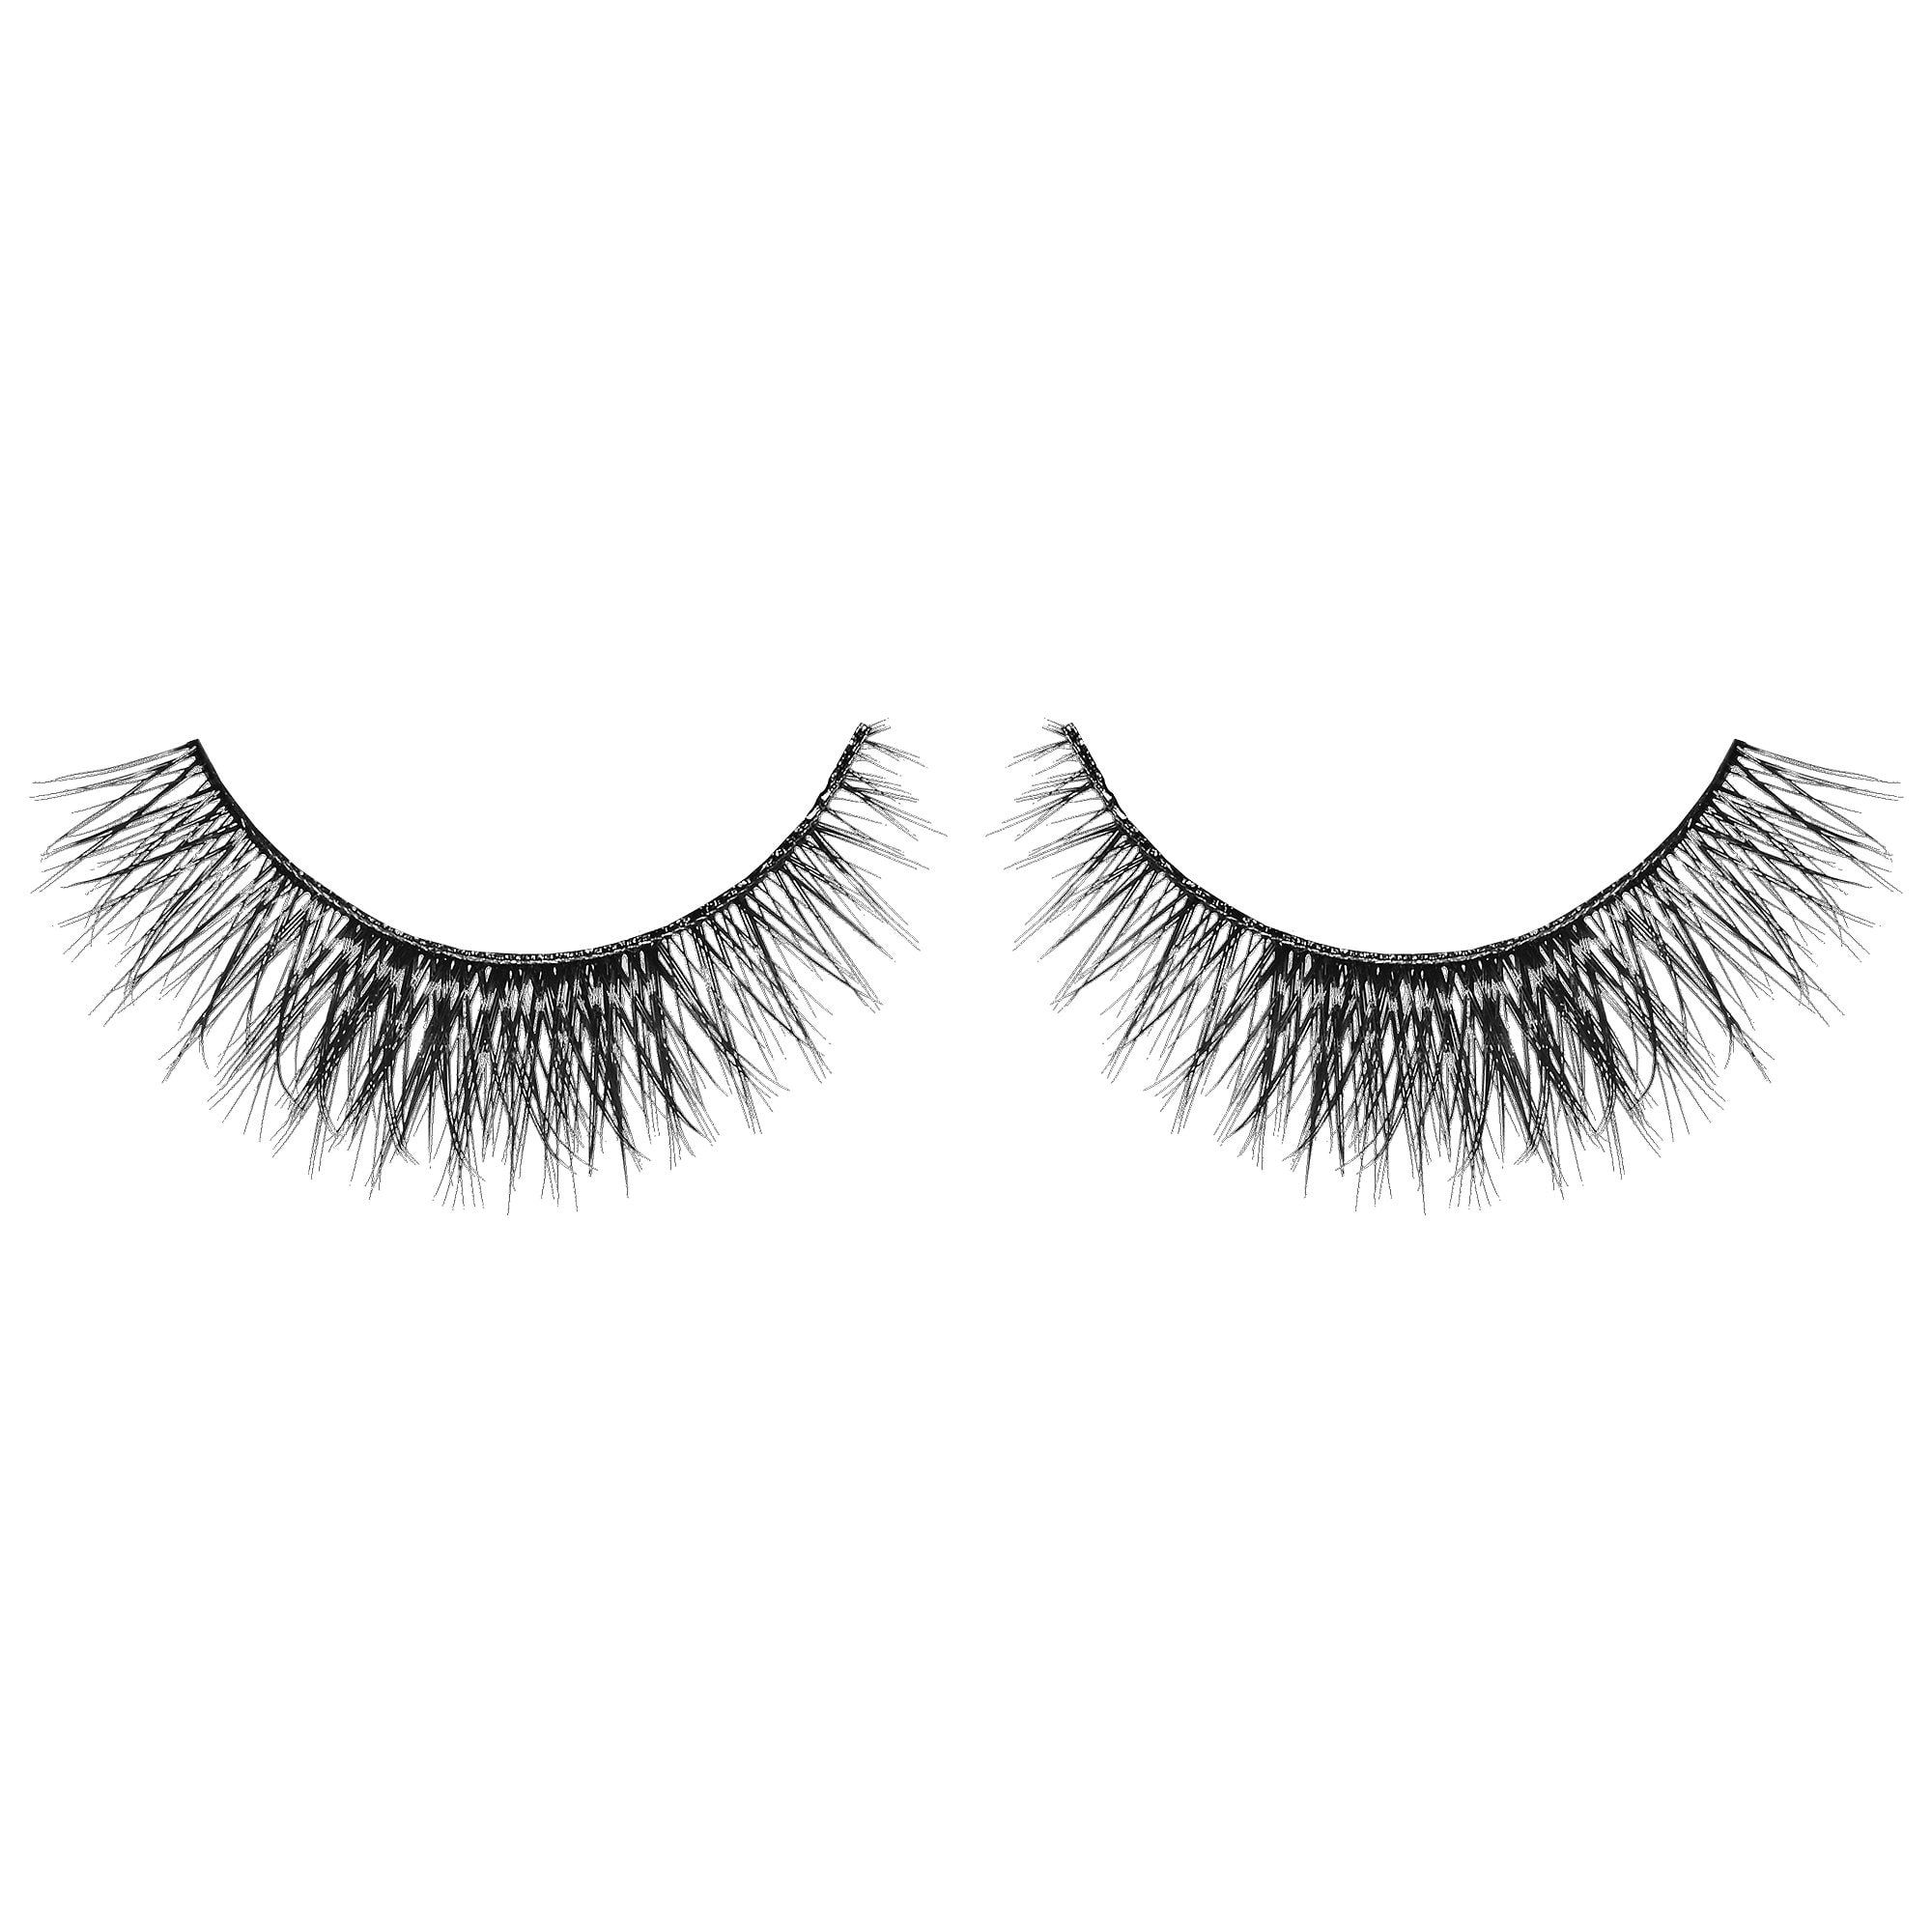 d1ce49d94e7 Sephora Collection False Eye Lashes Audacious #21 | Products in 2019 ...